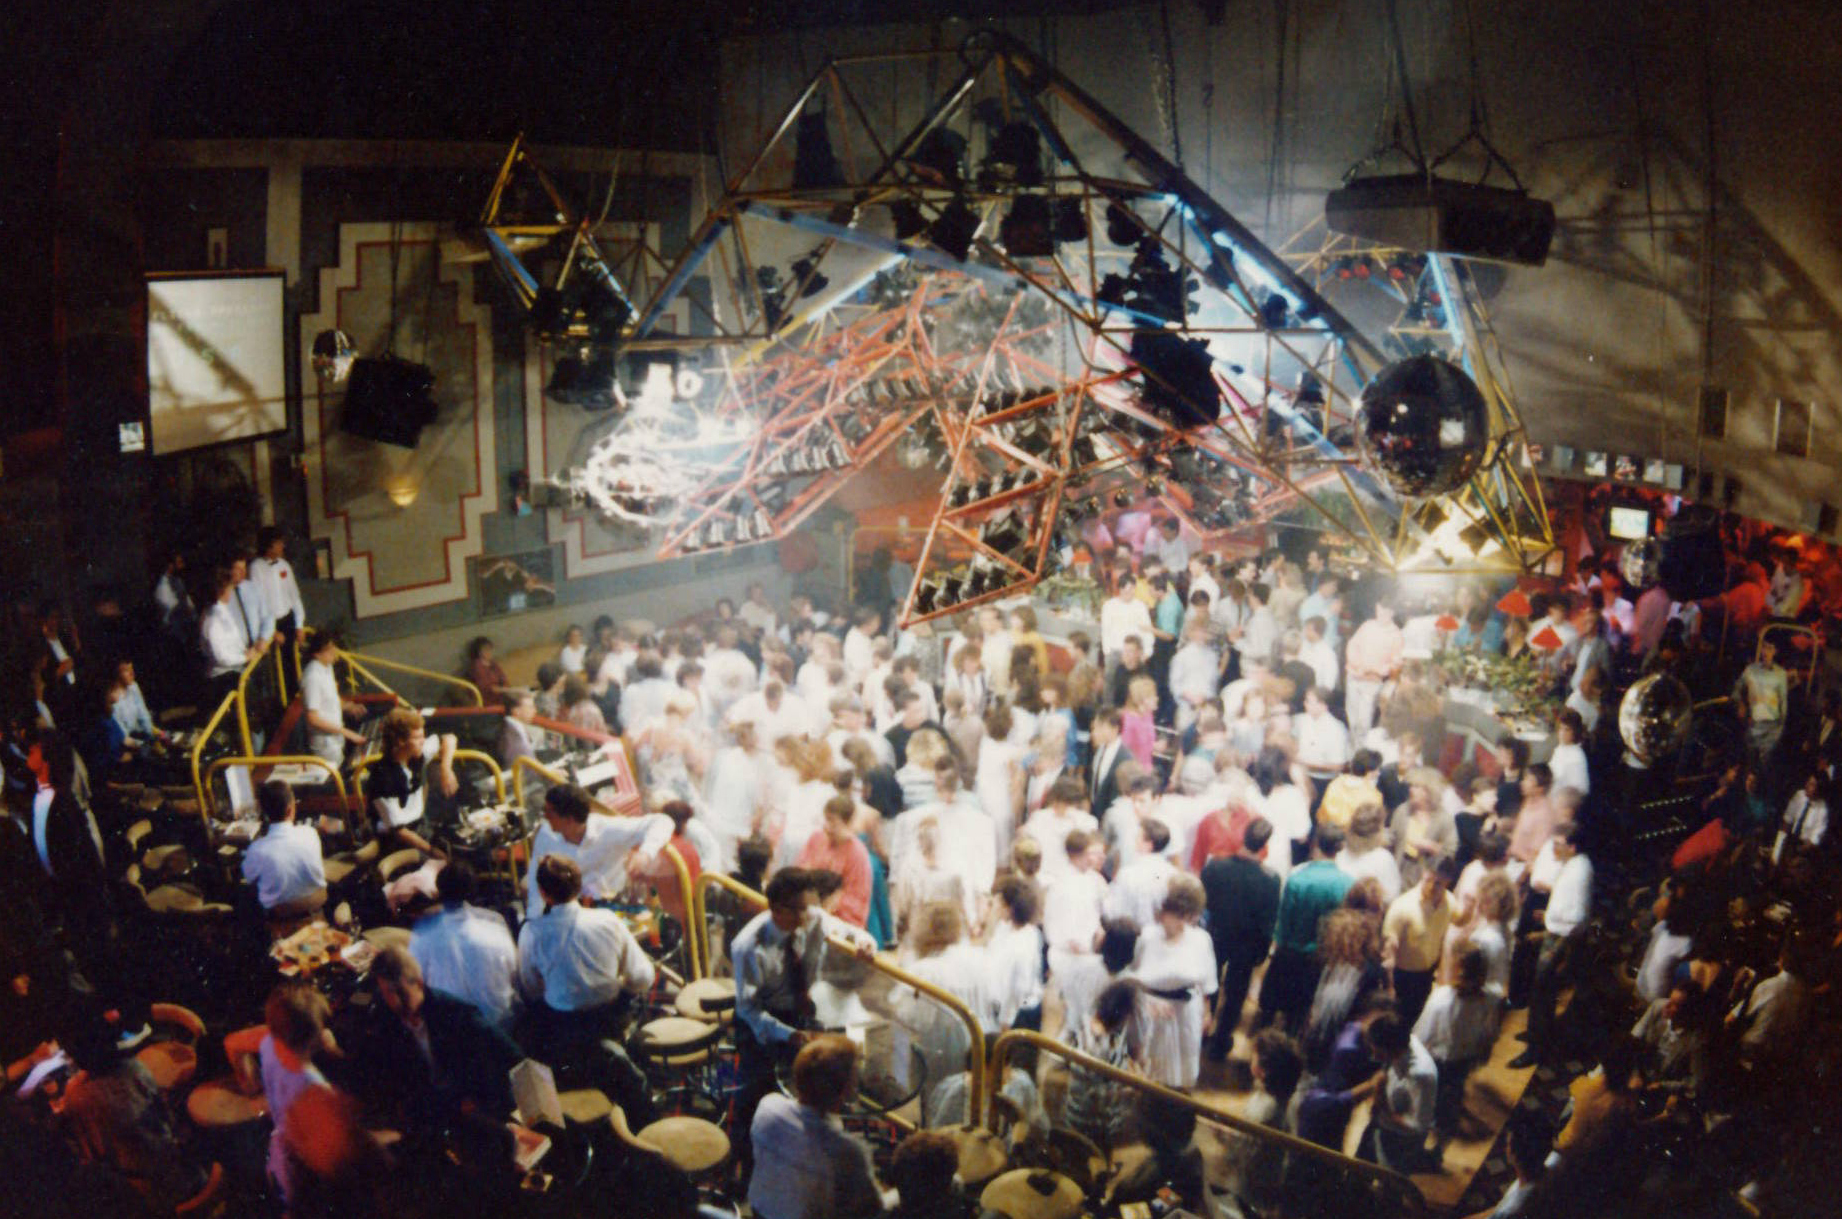 Flicks nightclub in its heyday